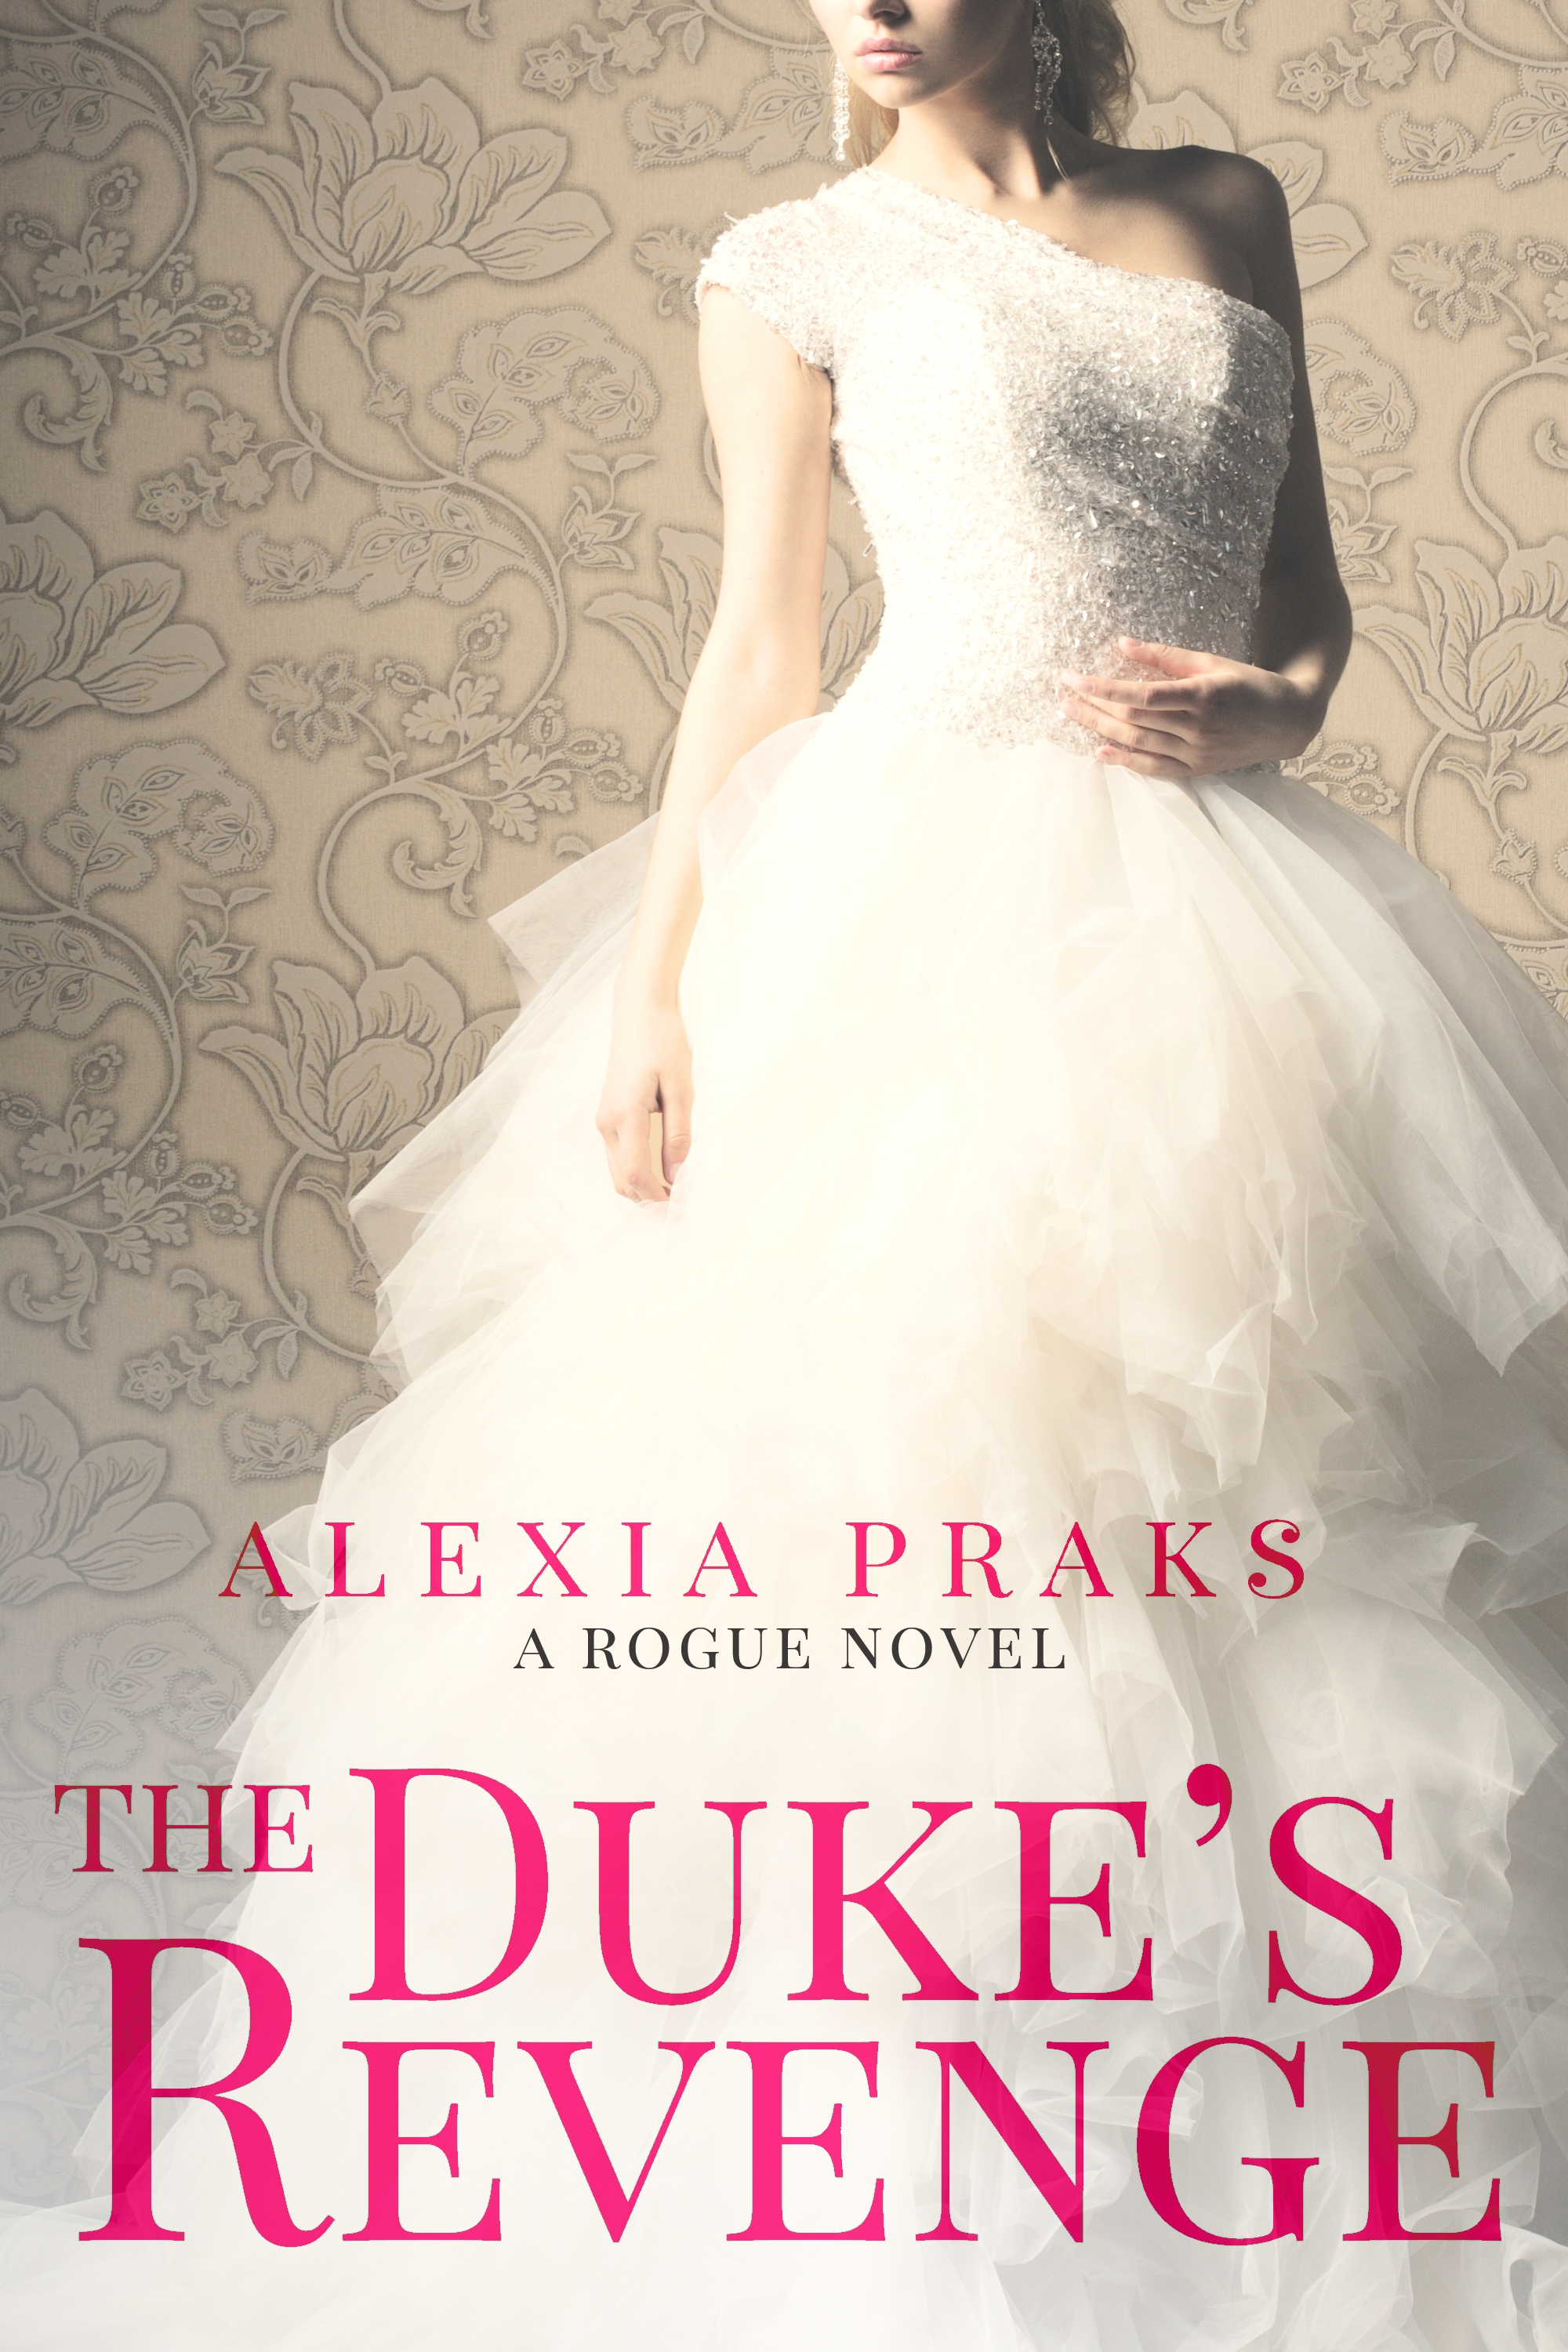 historical romance, regency romance, alexia praks, sexy romance, the rogue series